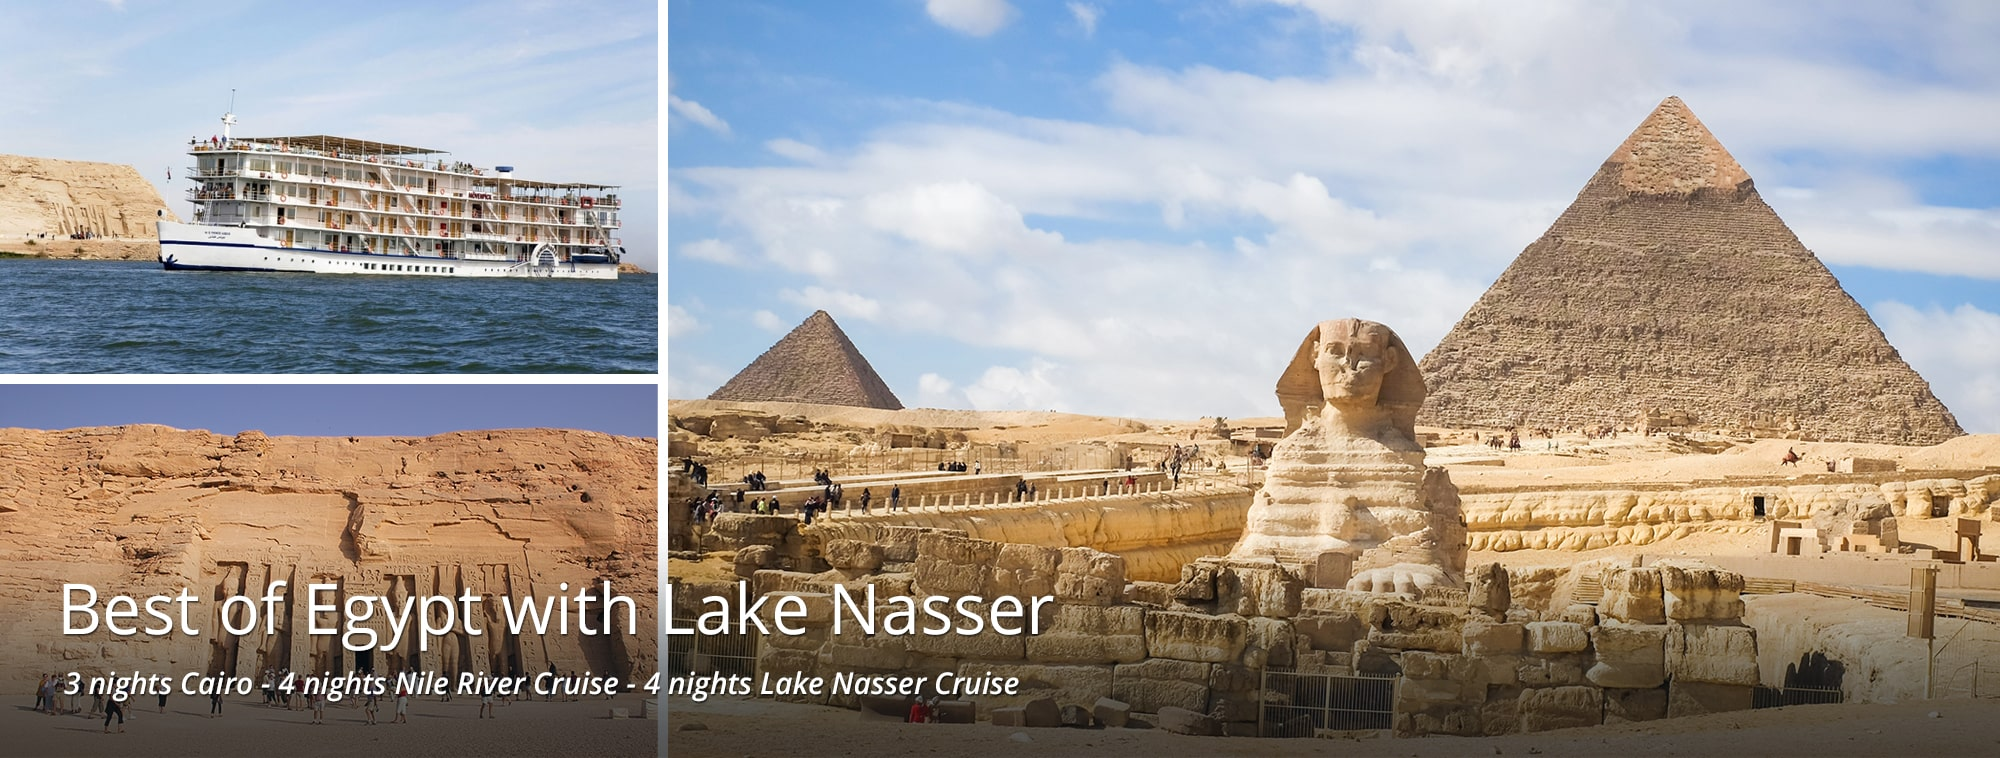 Best of Egypt with Lake Nasser Tour